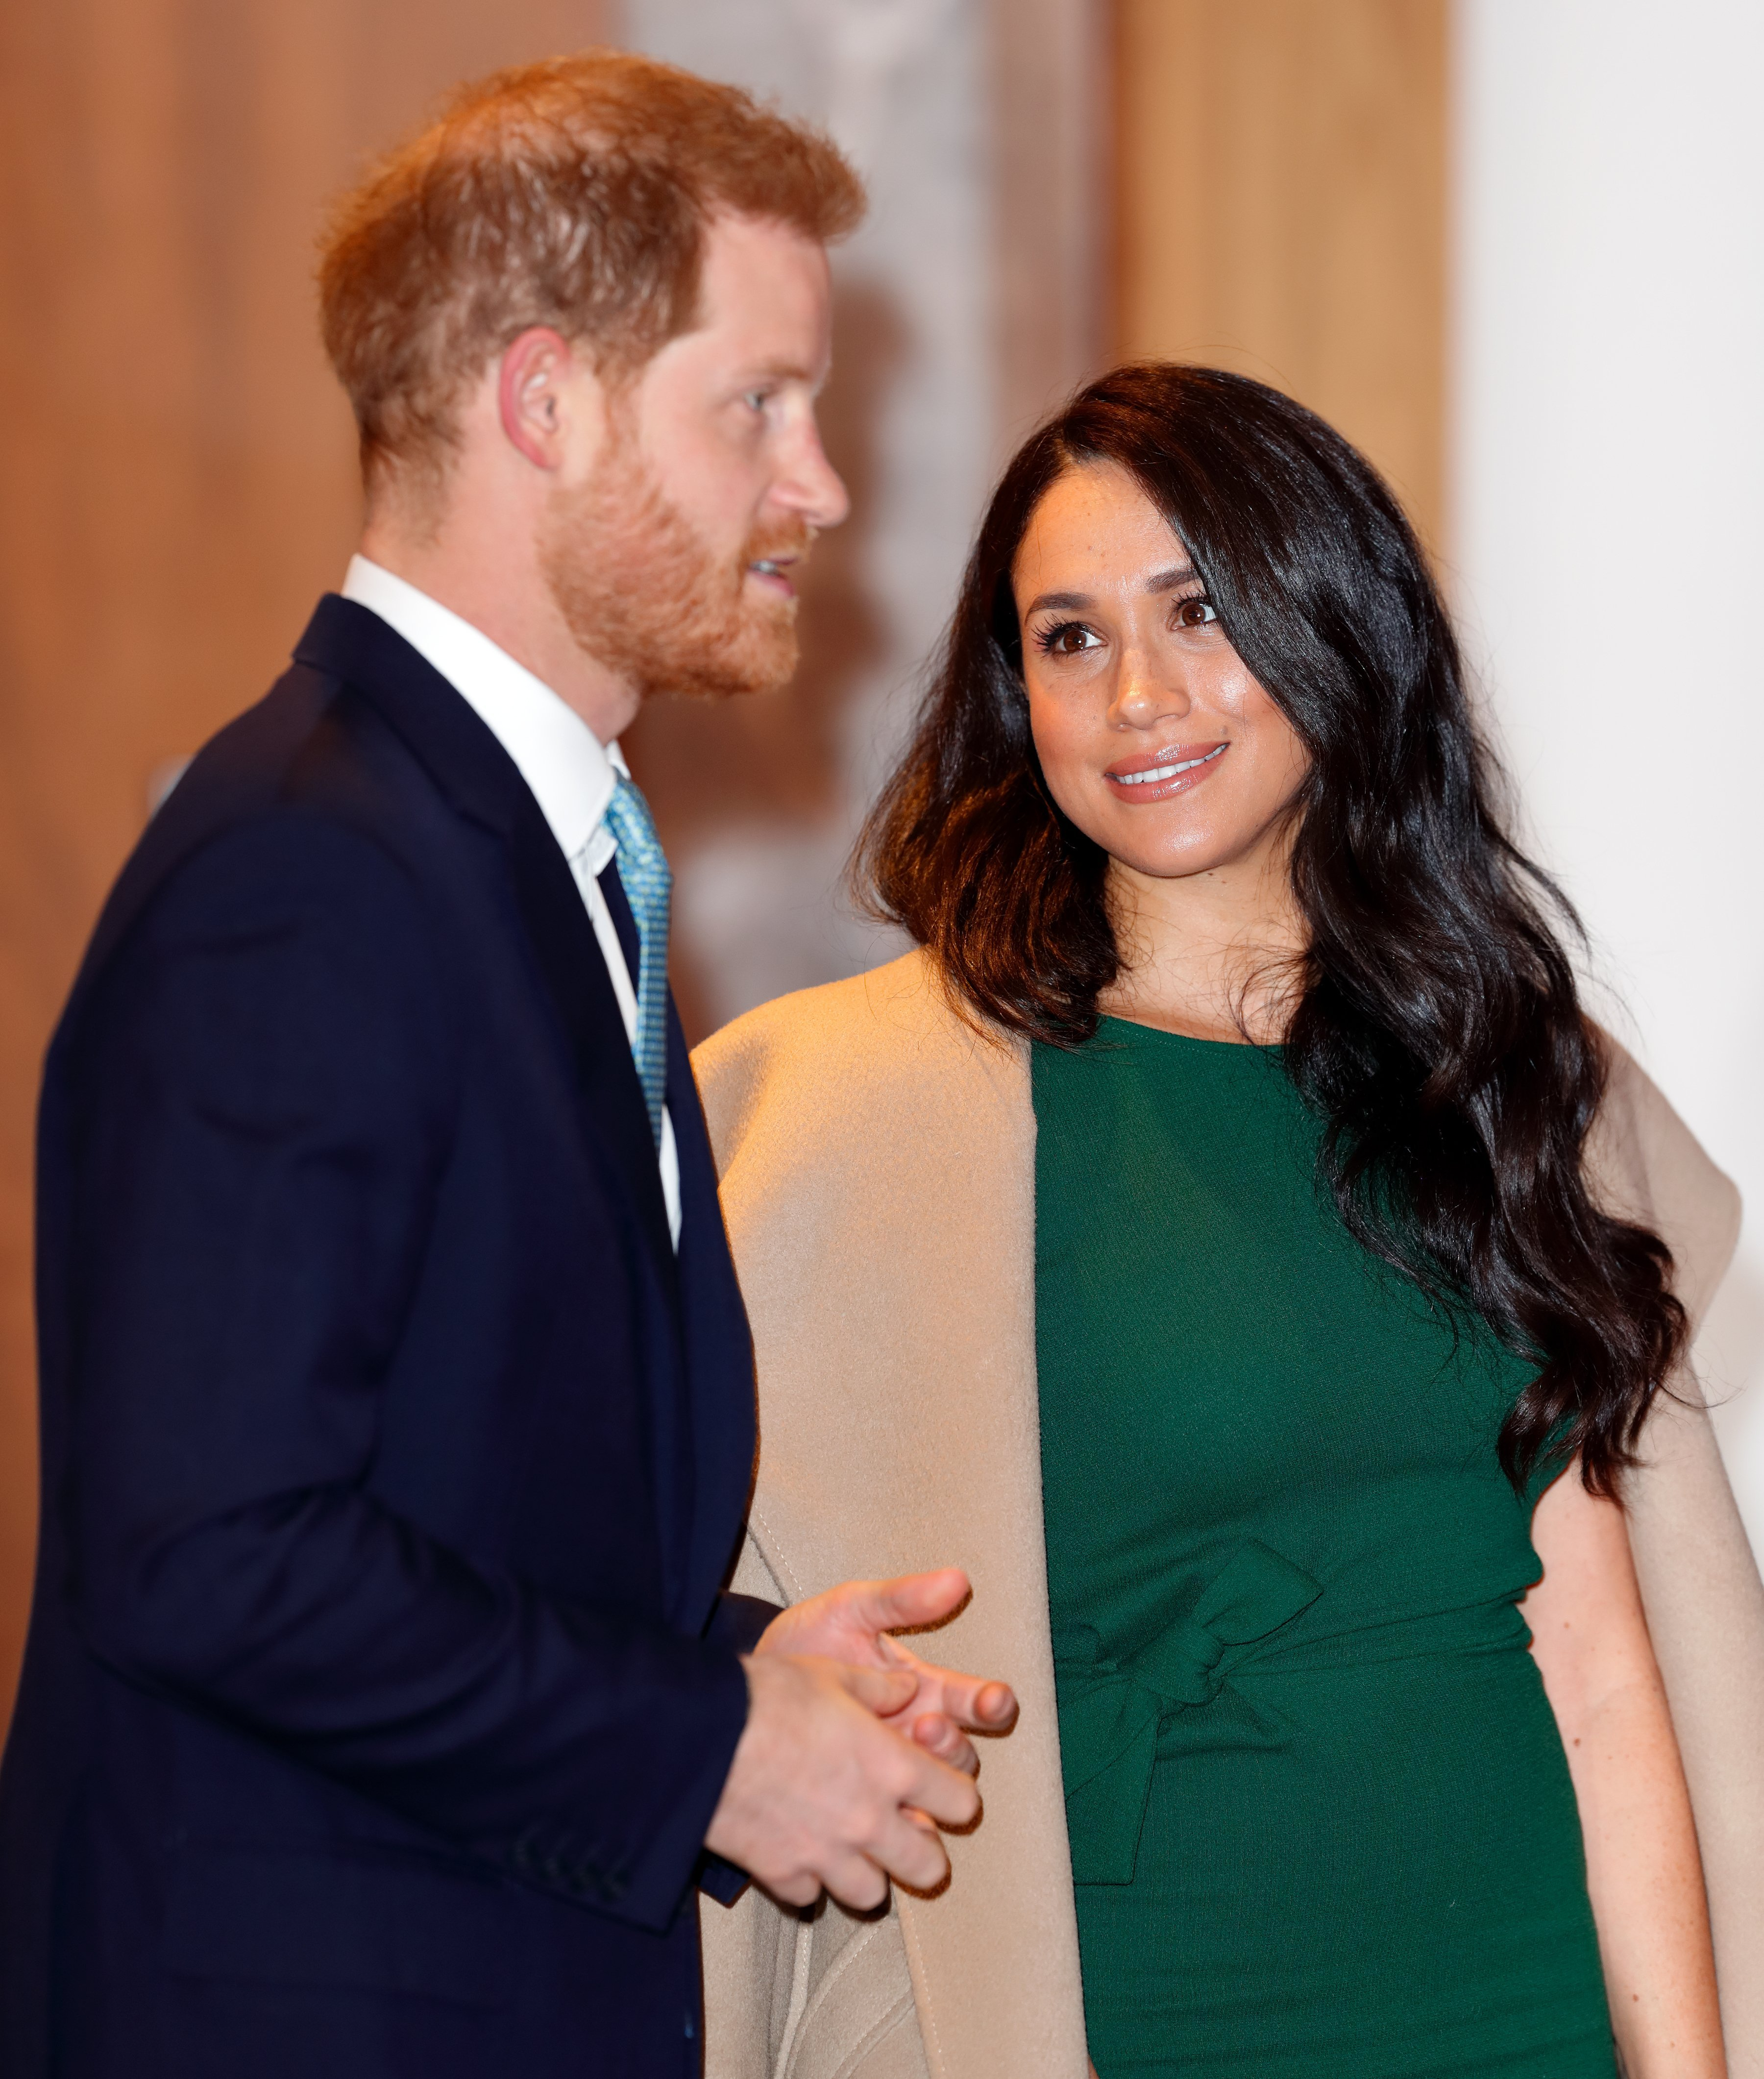 Prince Harry & Meghan Markle at the WellChild awards on Oct. 15, 2019 in London, England | Photo: Getty Images